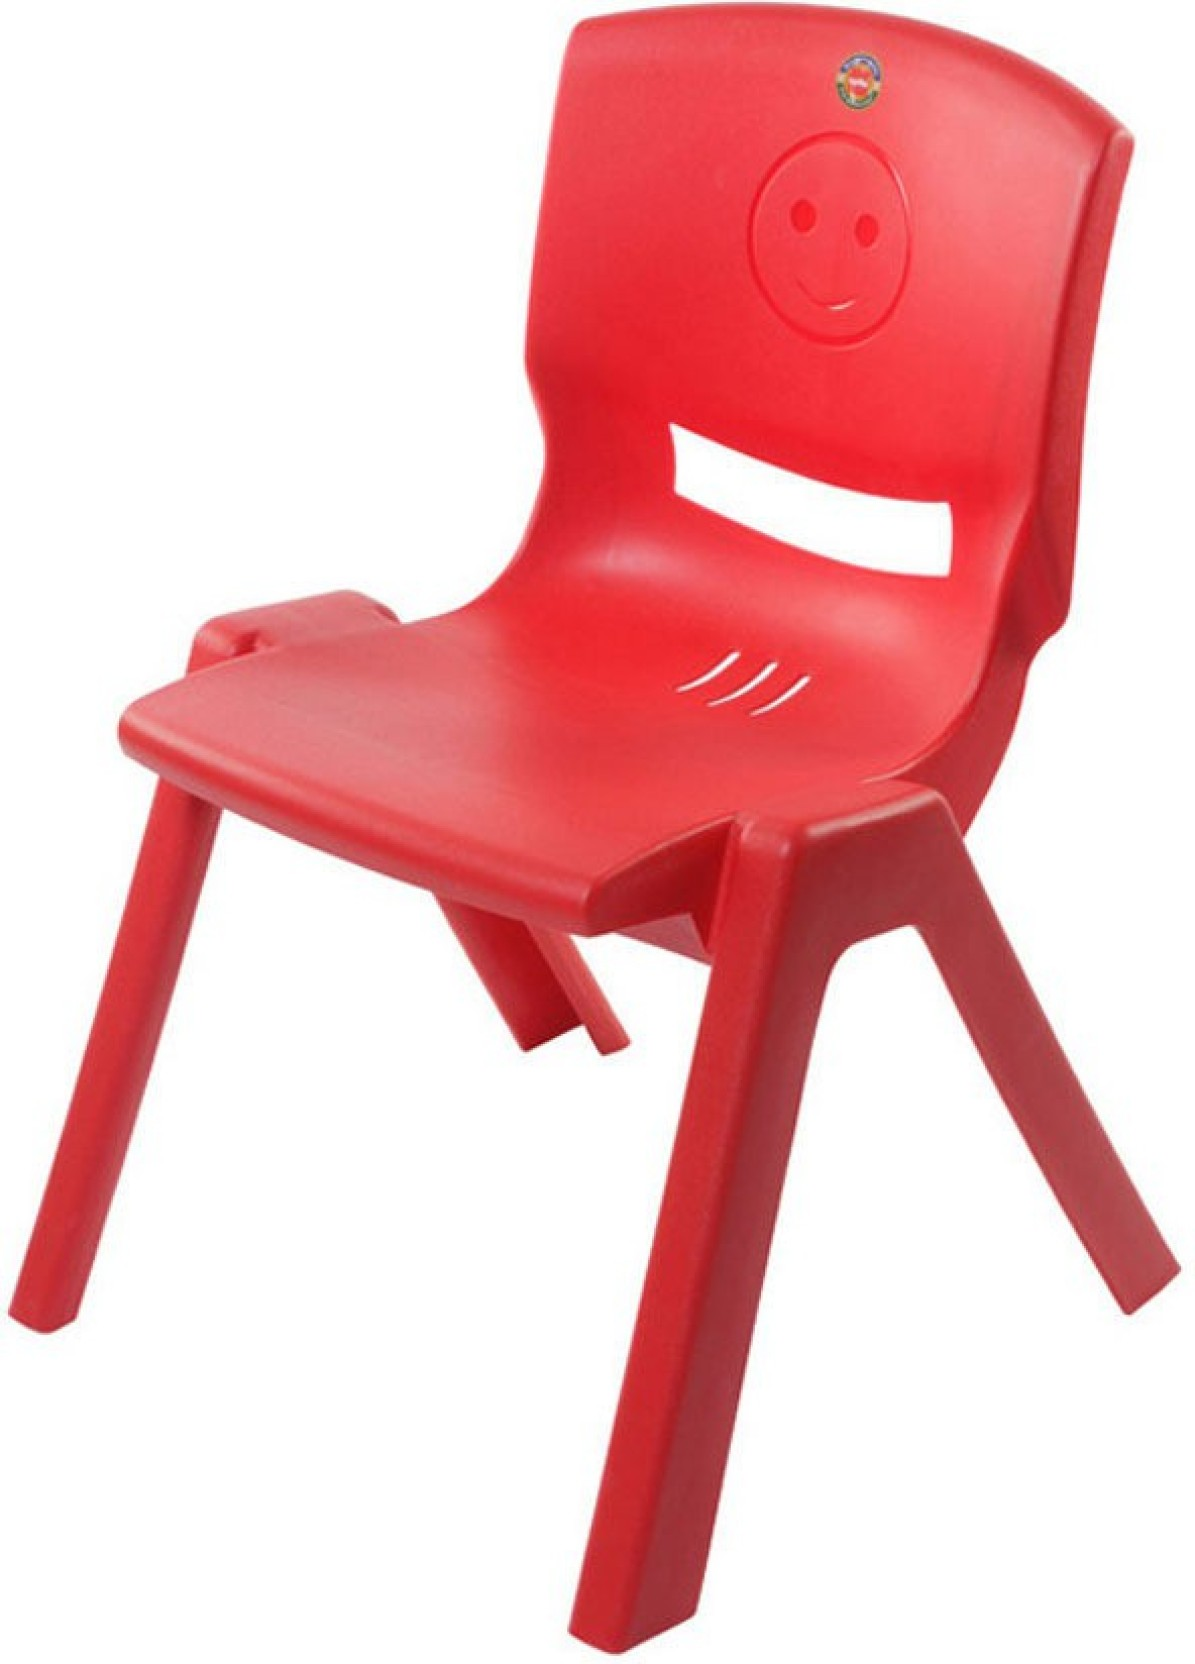 100 Plastic Chairs Online Shopping In Bangalore Buy  : cello rock chair pvc cello red red original imaednajmrxpsu6x from mitzissister.com size 1195 x 1664 jpeg 127kB